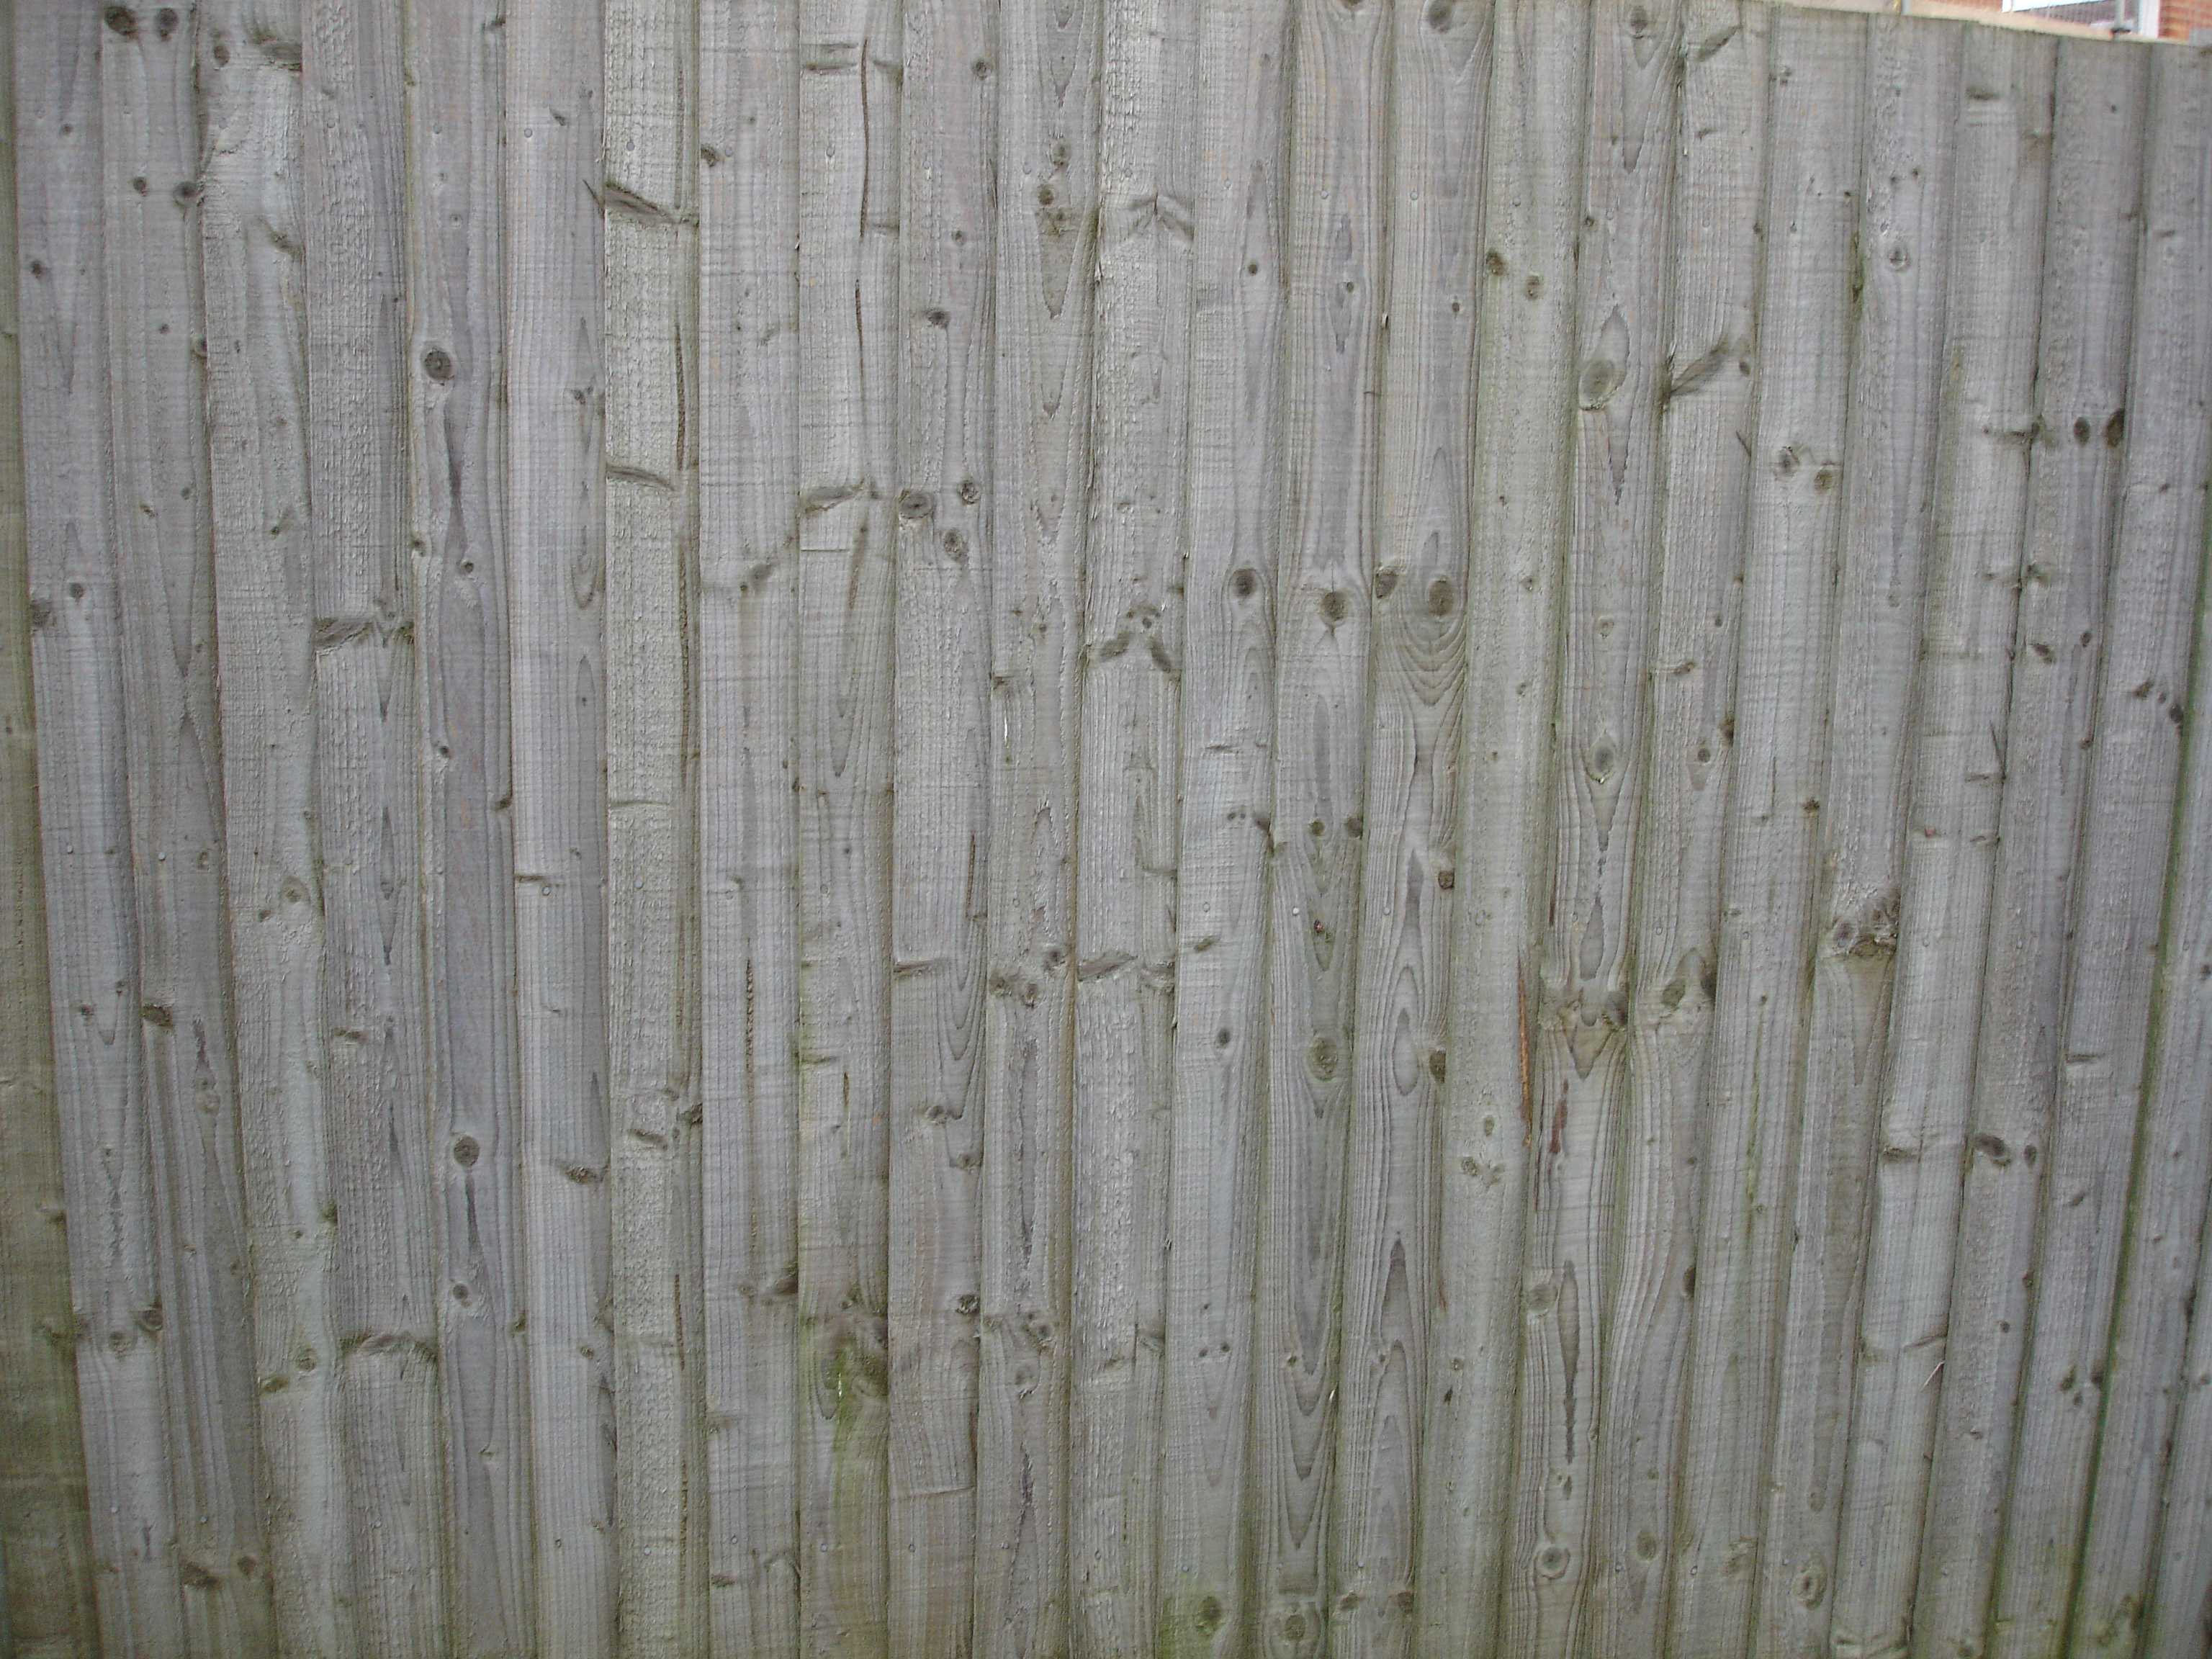 Amazing photo of Wood fence panel Flickr Photo Sharing! with #4C4B3A color and 3072x2304 pixels